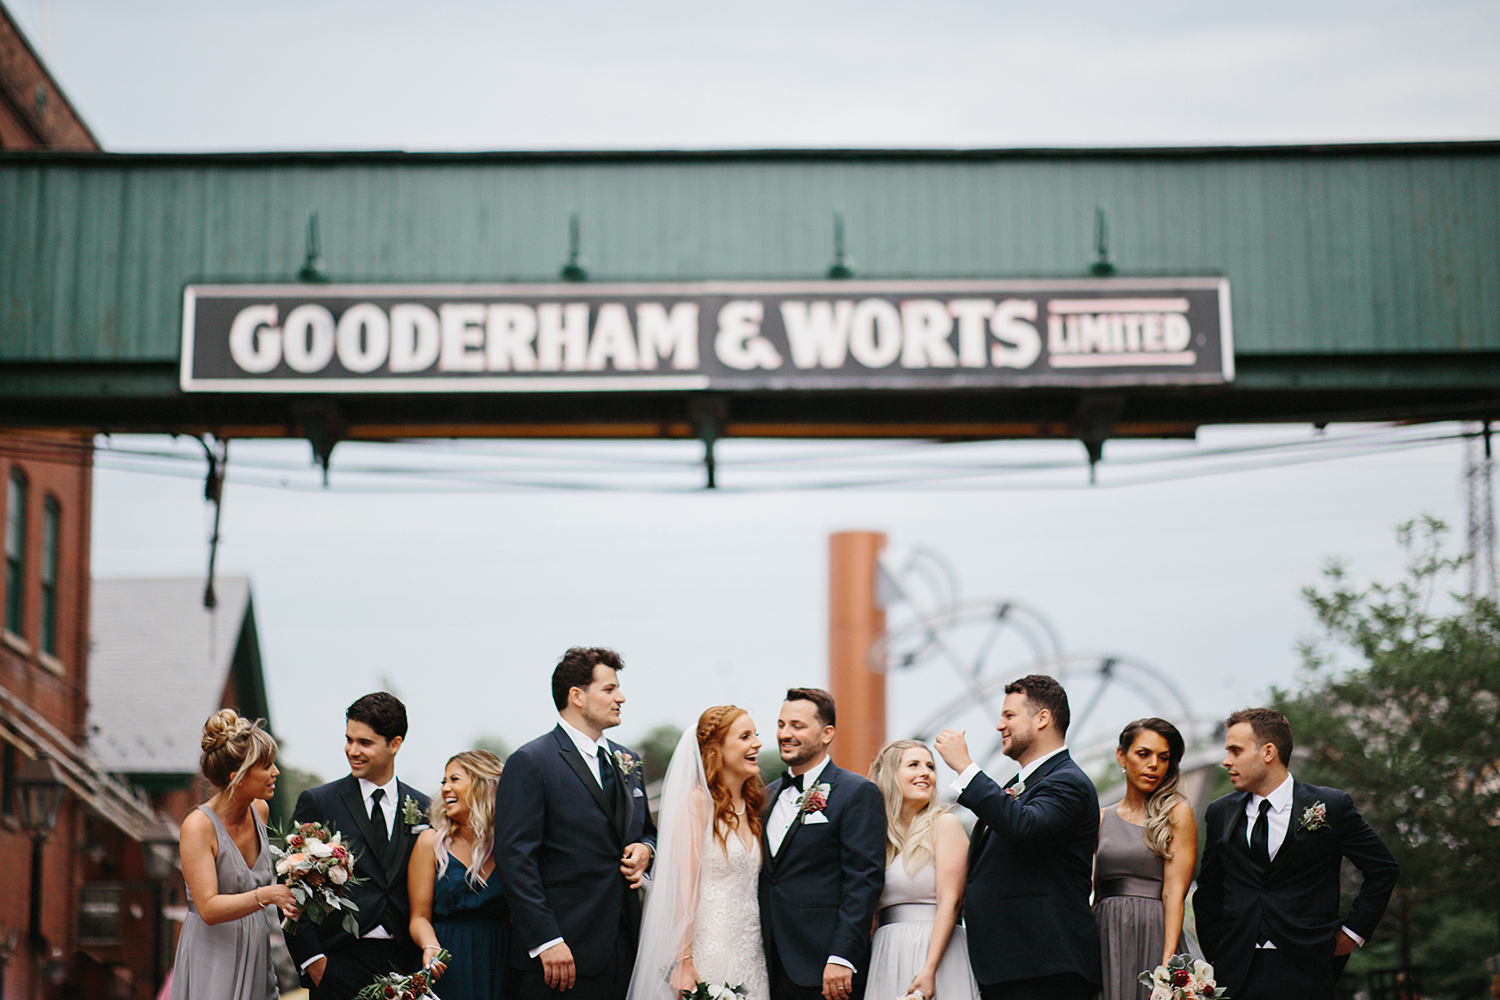 torontos-best-documentary-wedding-photographers-ryanne-hollies-photography-fine-art-photojournalism-artistic-moody-toronto-airship37-distillery-district-groom-and-bride-portraits-candid-bridal-party.jpg